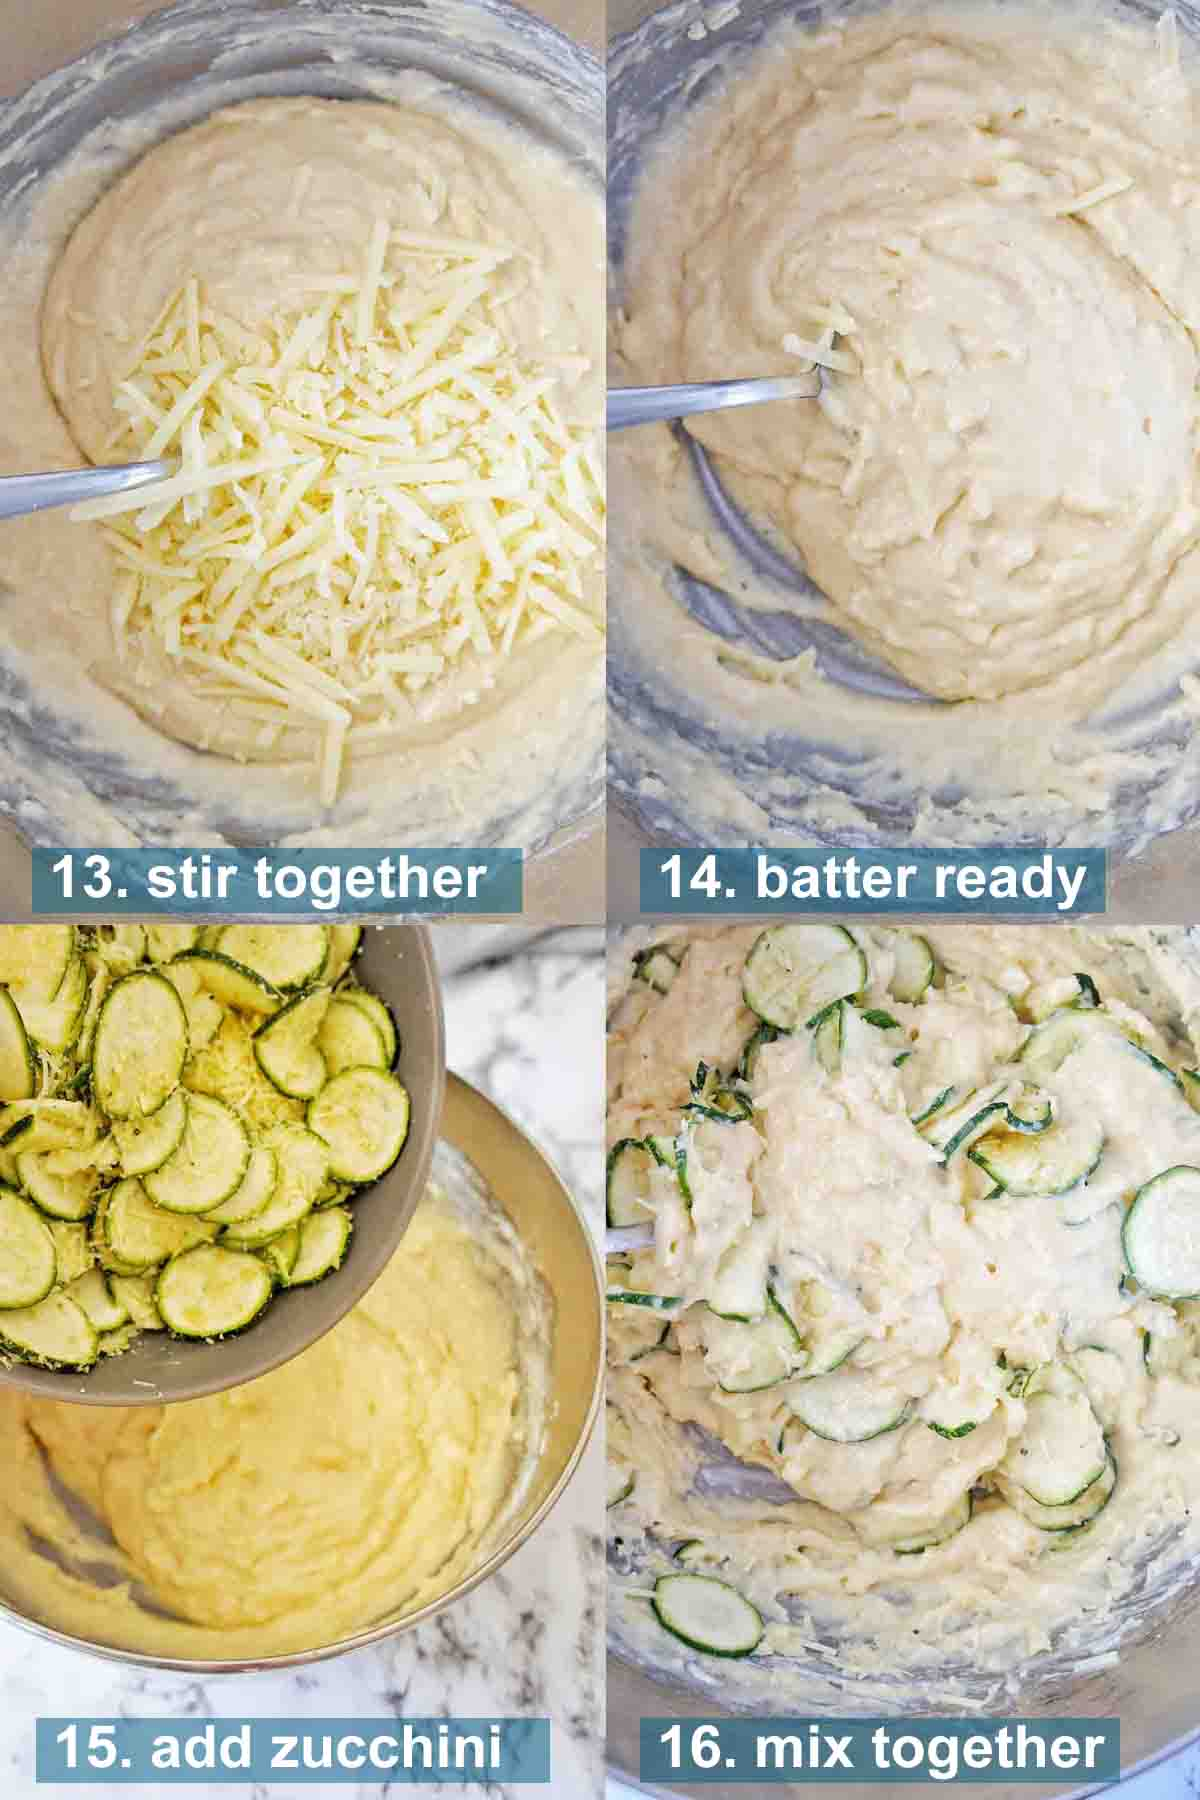 Zucchini muffins recipe batter steps with text overlay